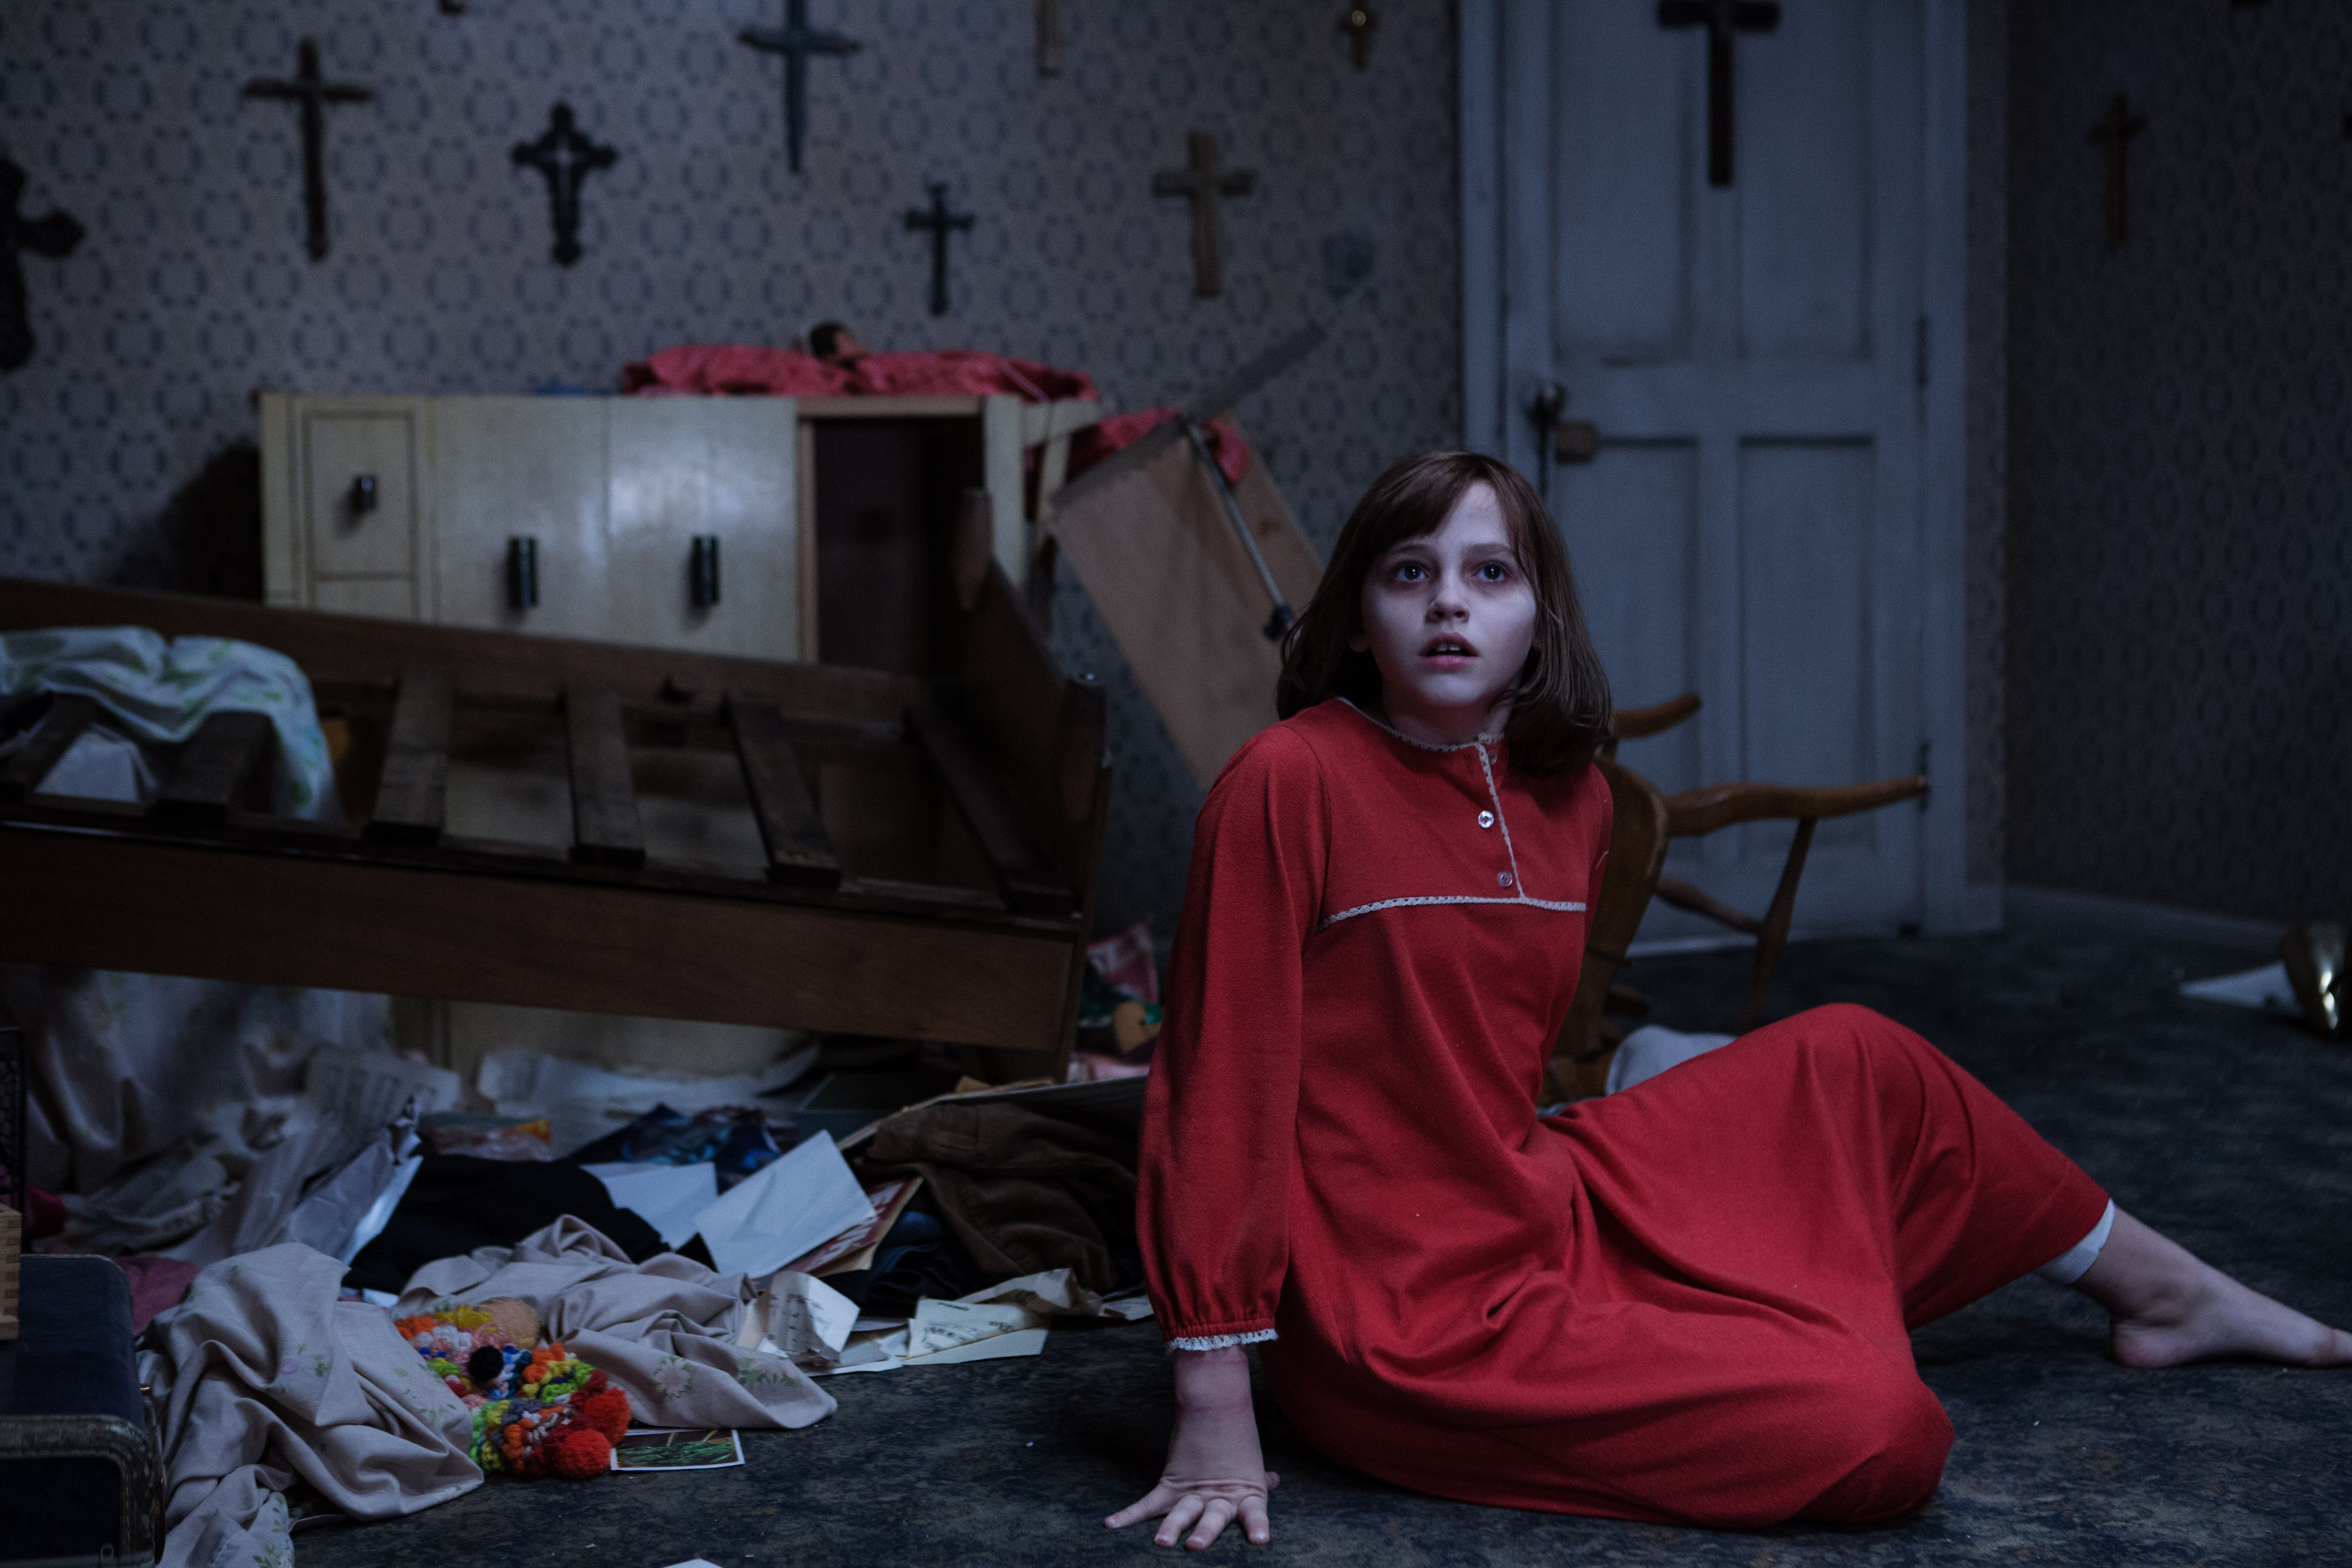 Reviews About The Conjuring The Conjuring